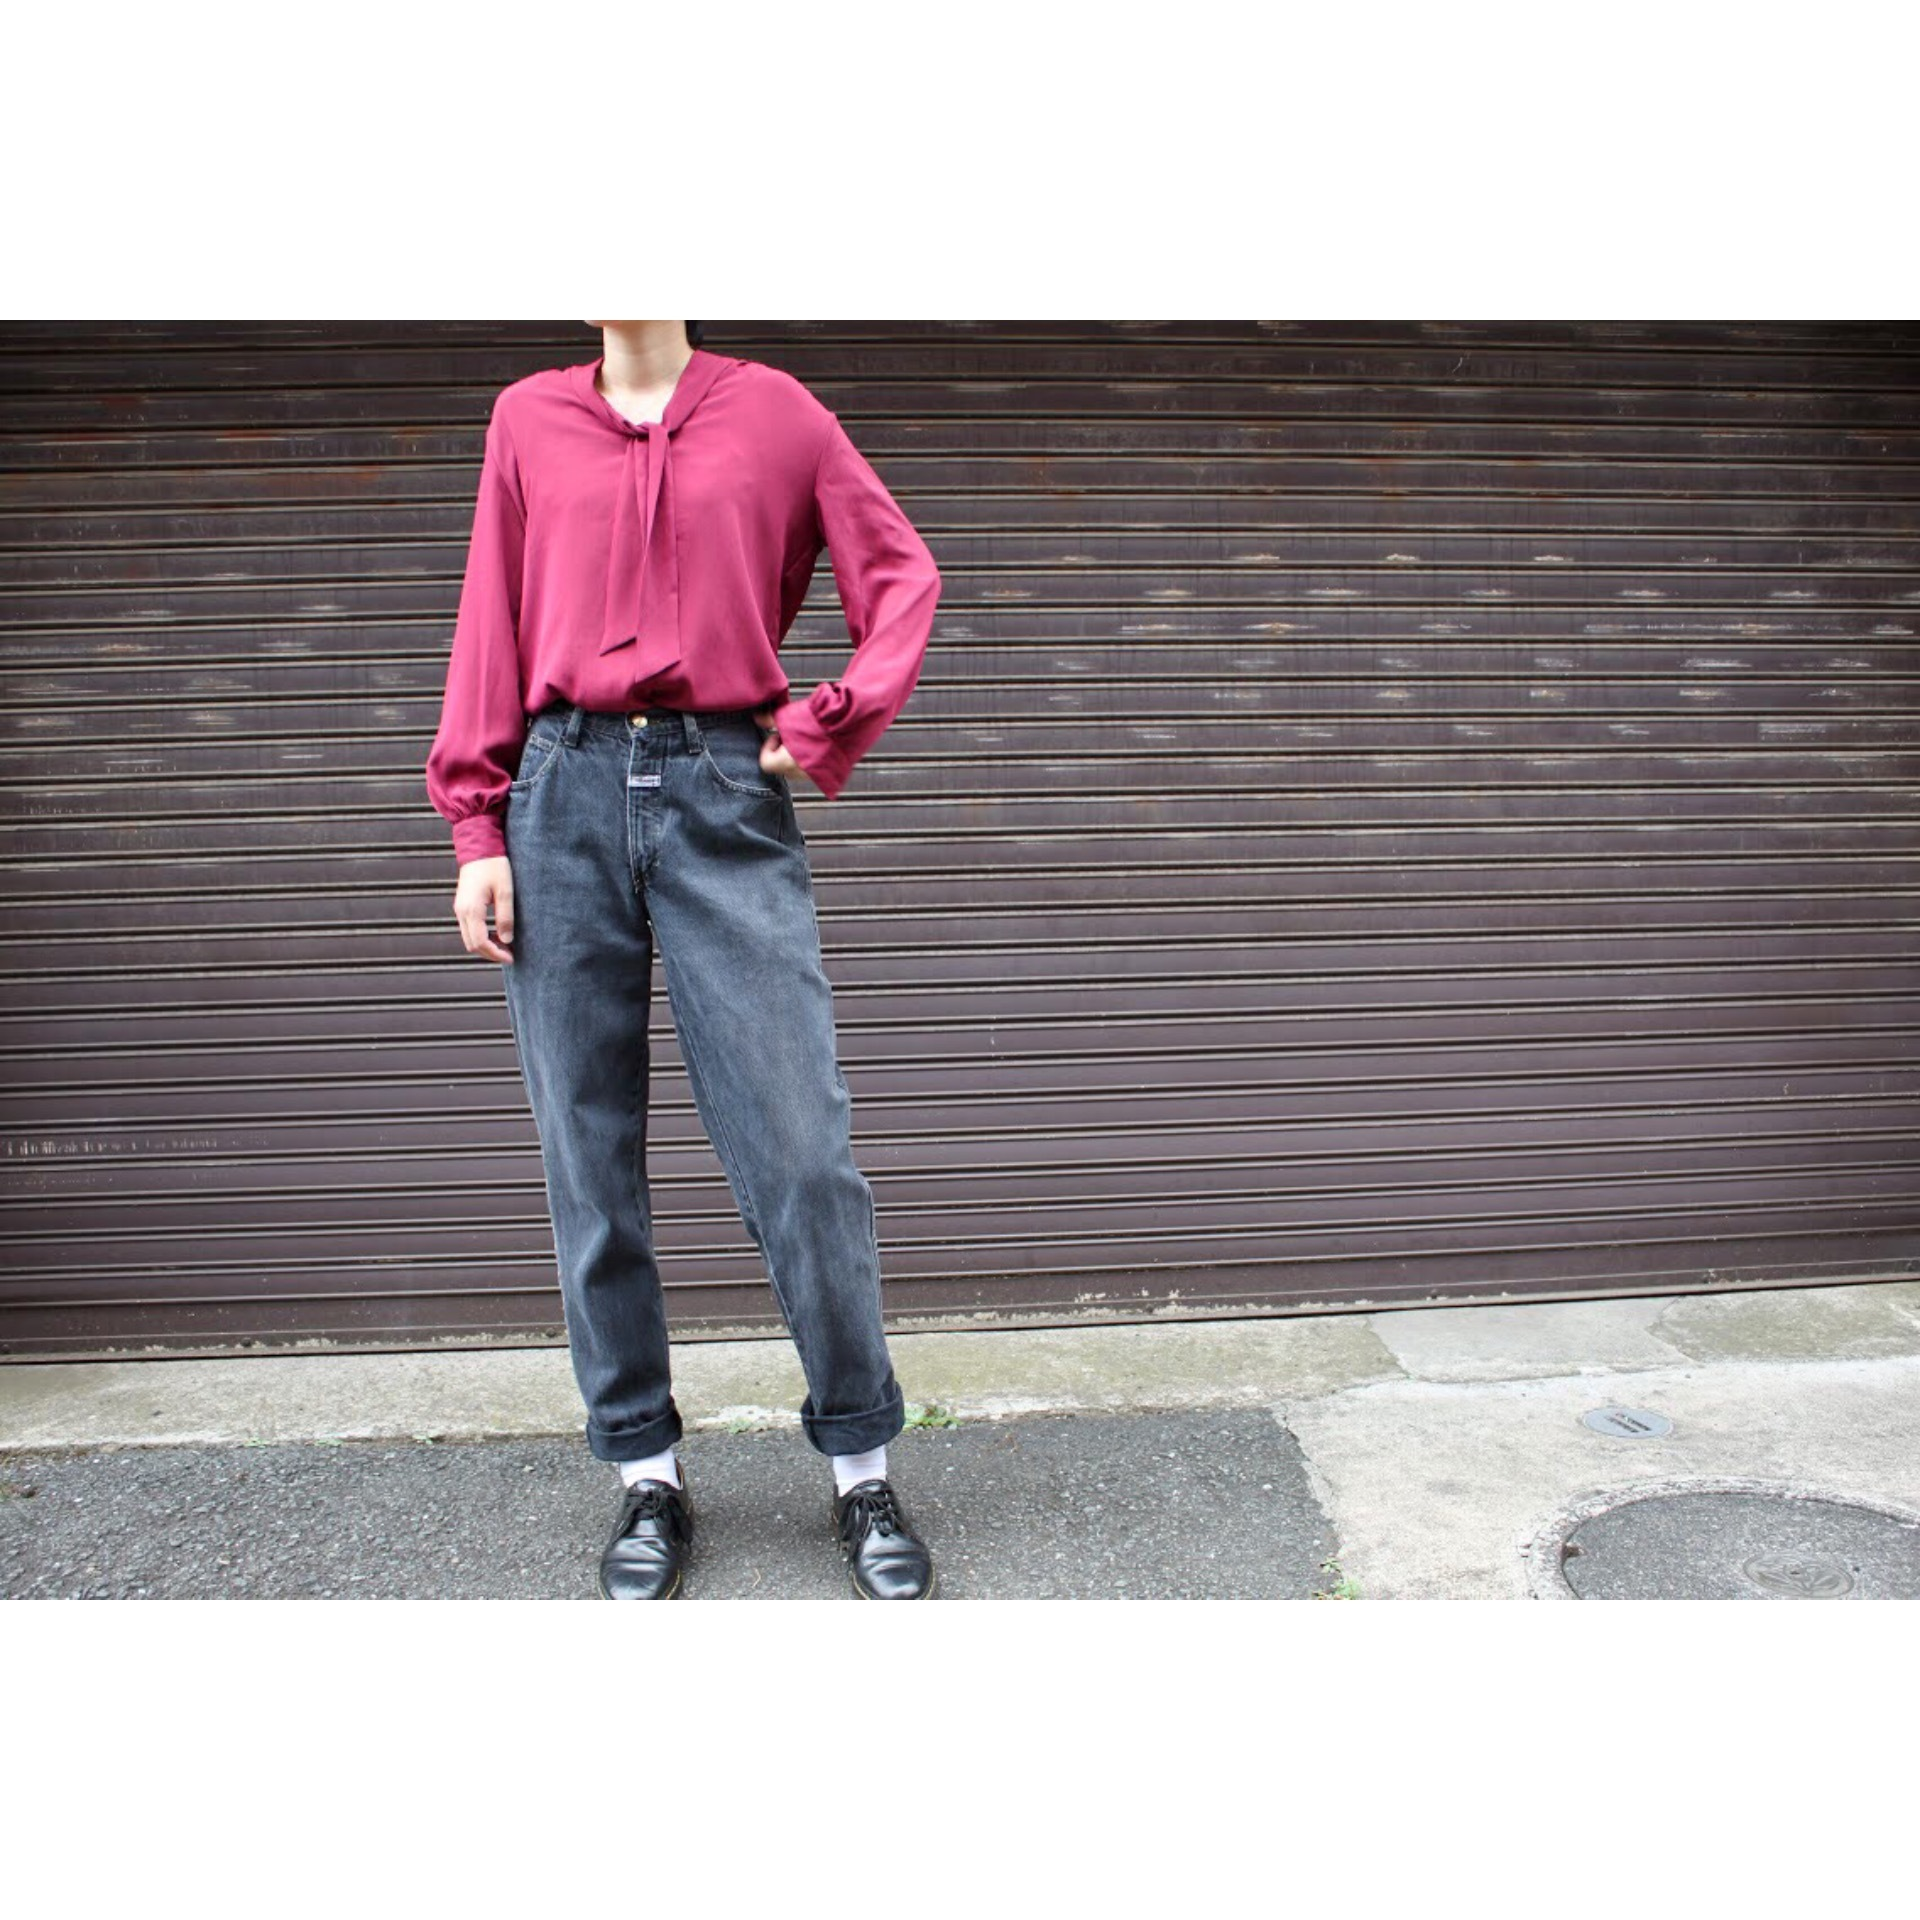 Vintage black denim pants by Marithé François Girbaud